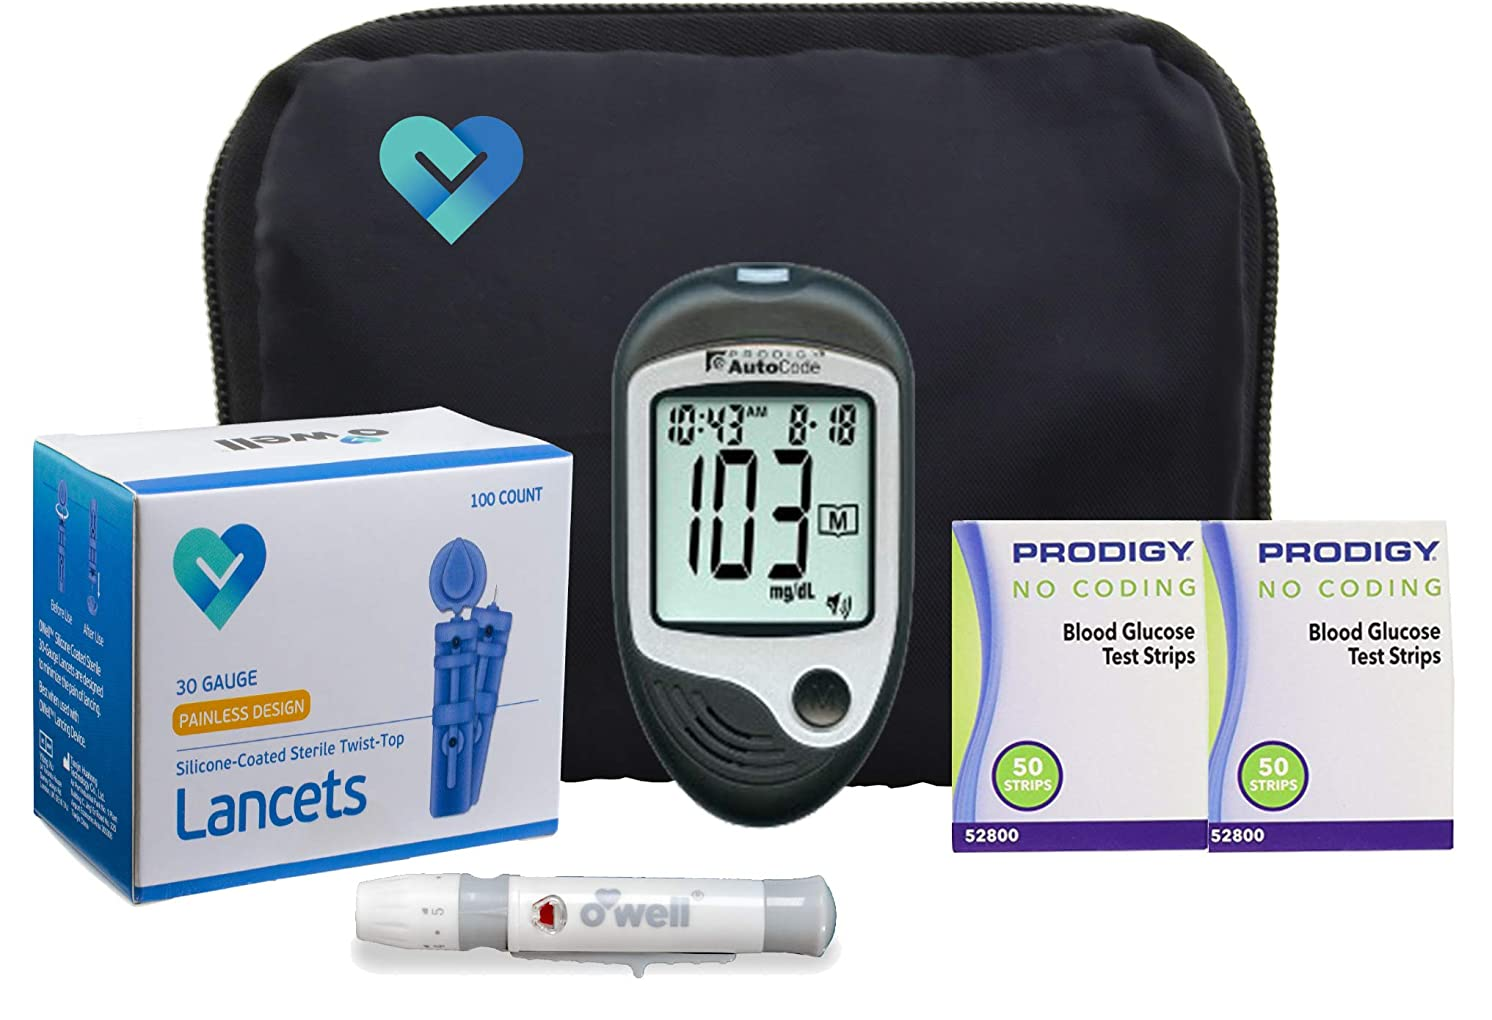 O'Well Prodigy Diabetes Testing Kit | Prodigy TALKING Blood Glucose Meter, 100 Prodigy Blood Glucose Test Strips, 100 Lancets, Lancing Device, Log Book, User Manuals & Carry Case